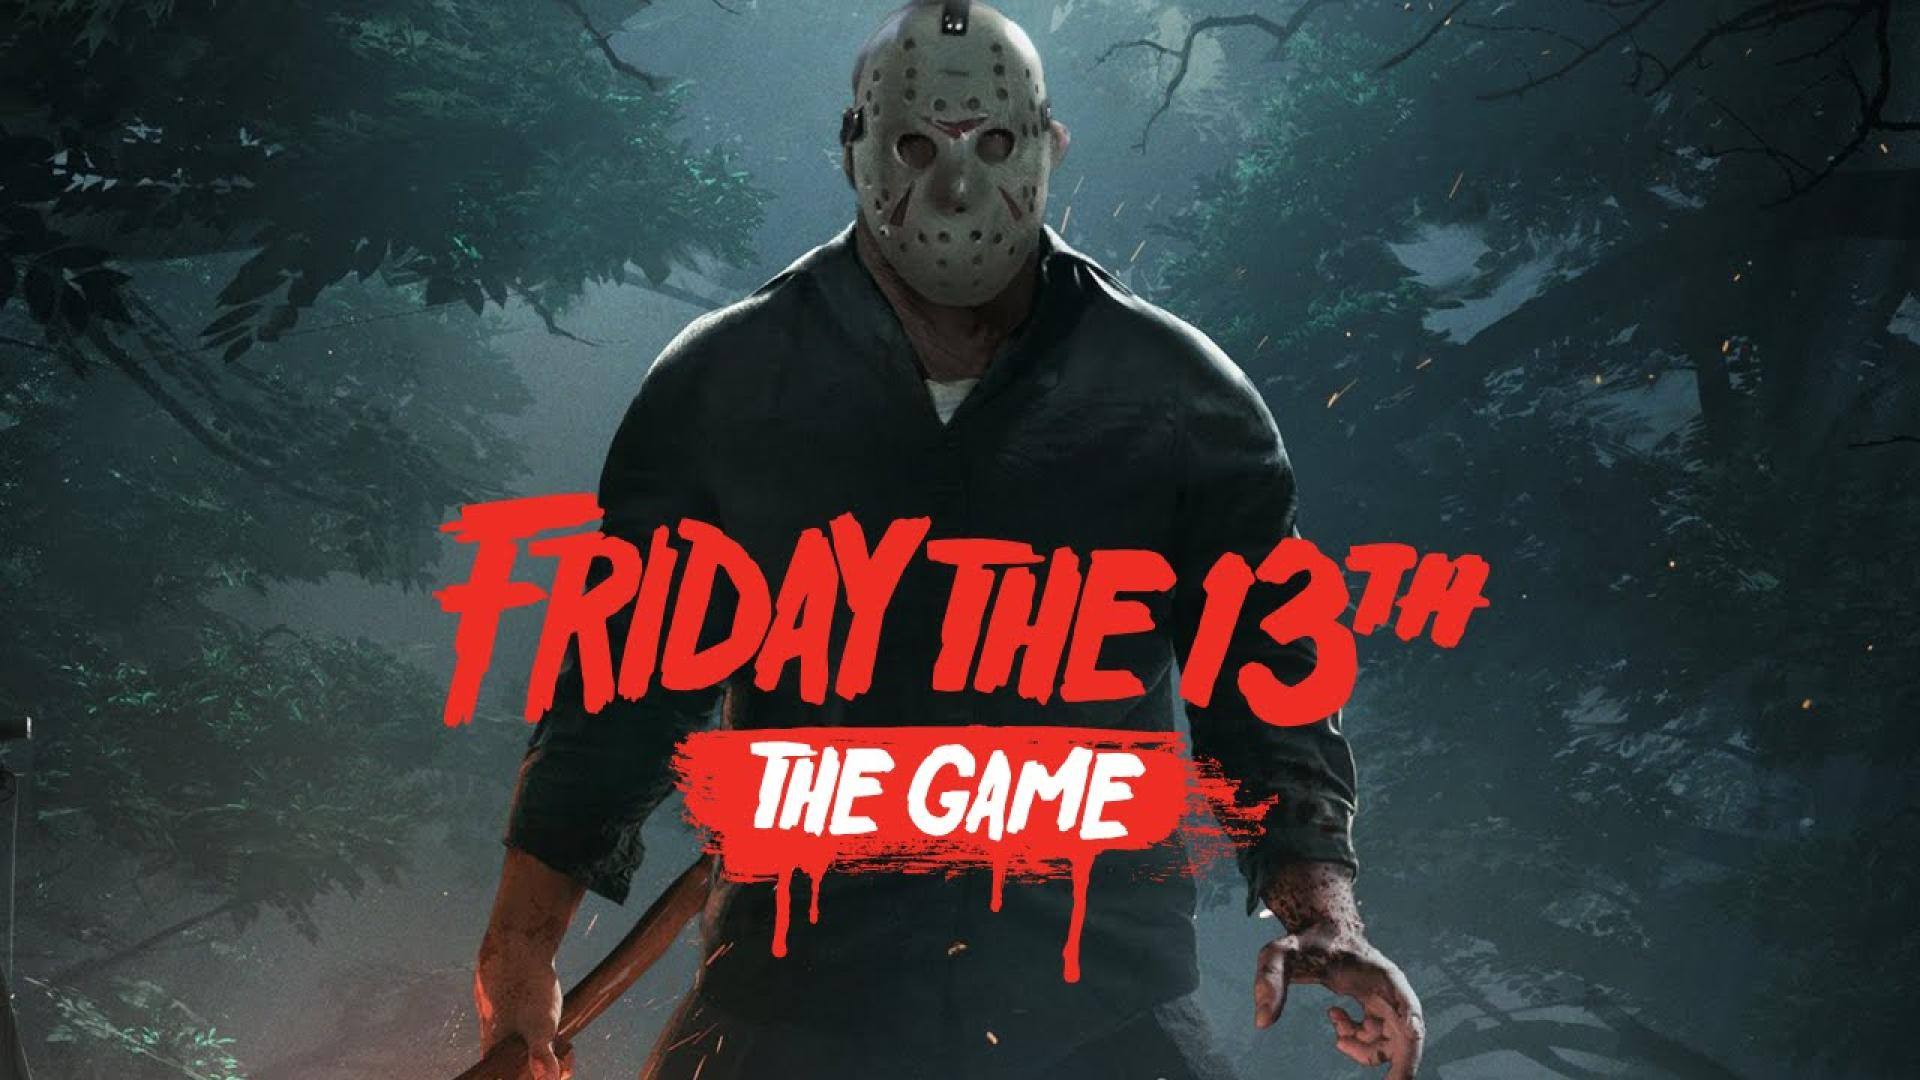 Friday the 13th: The Game (2017)